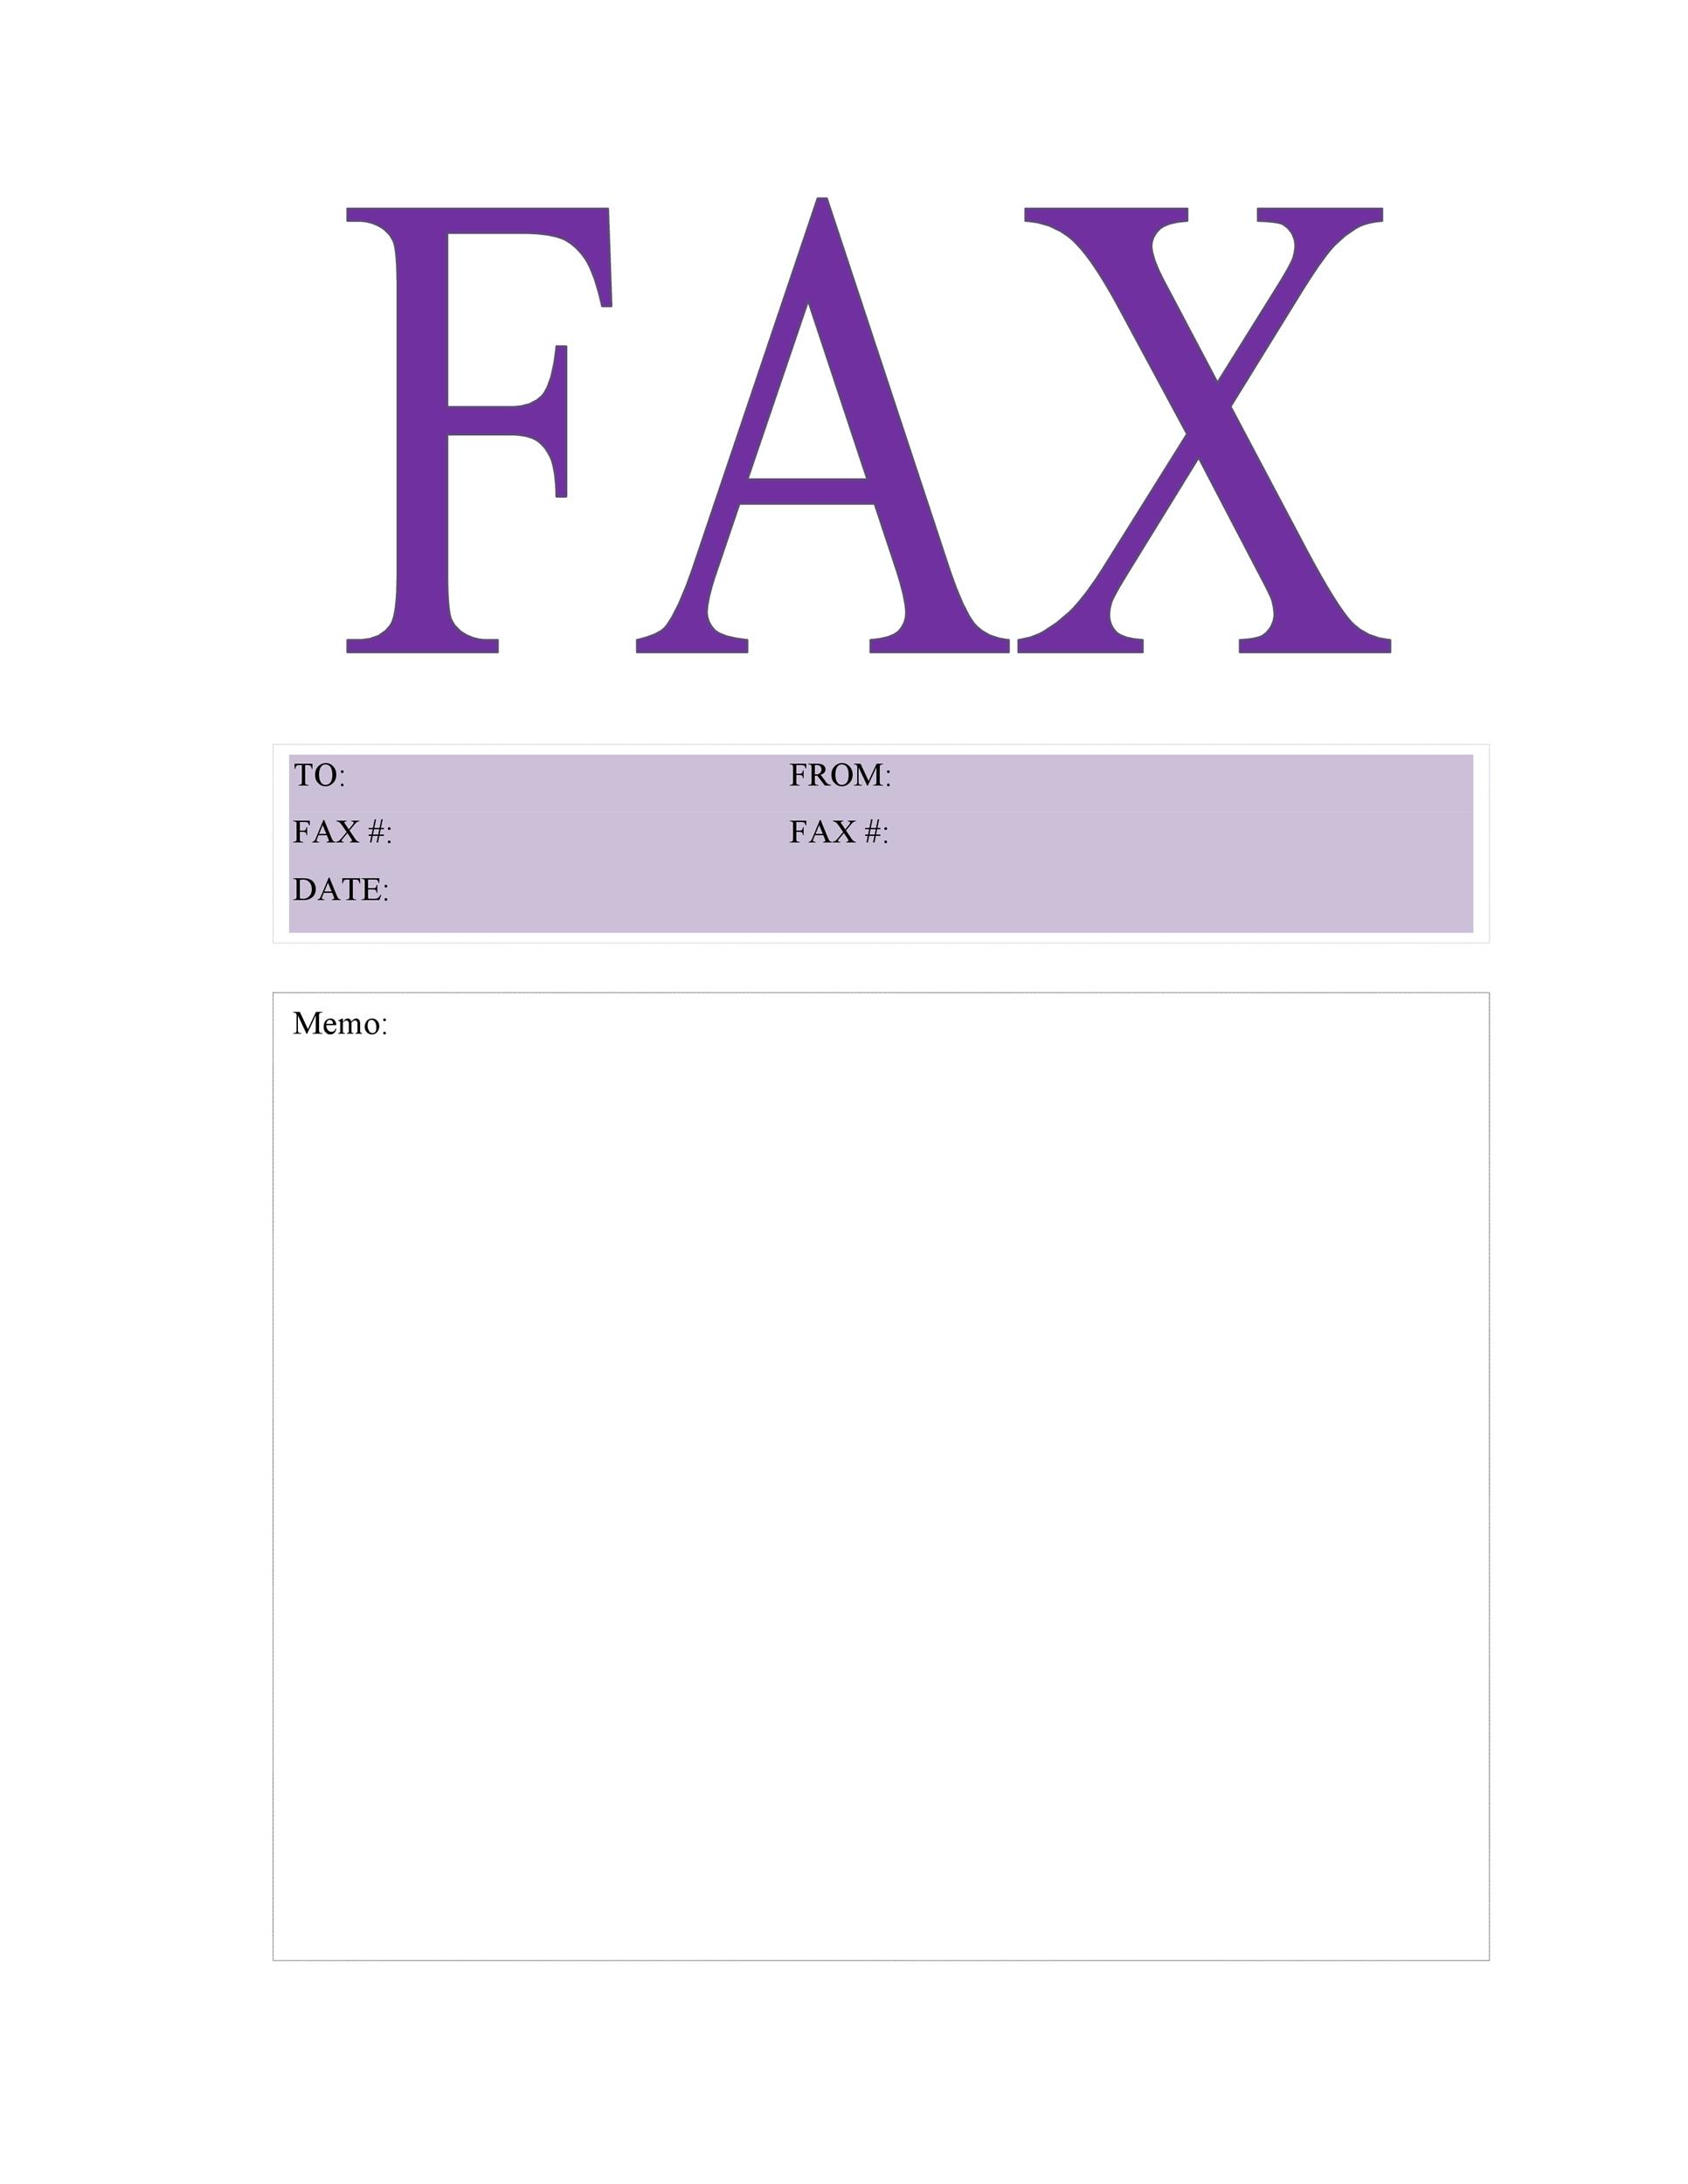 Fax Cover Sheet Template 03